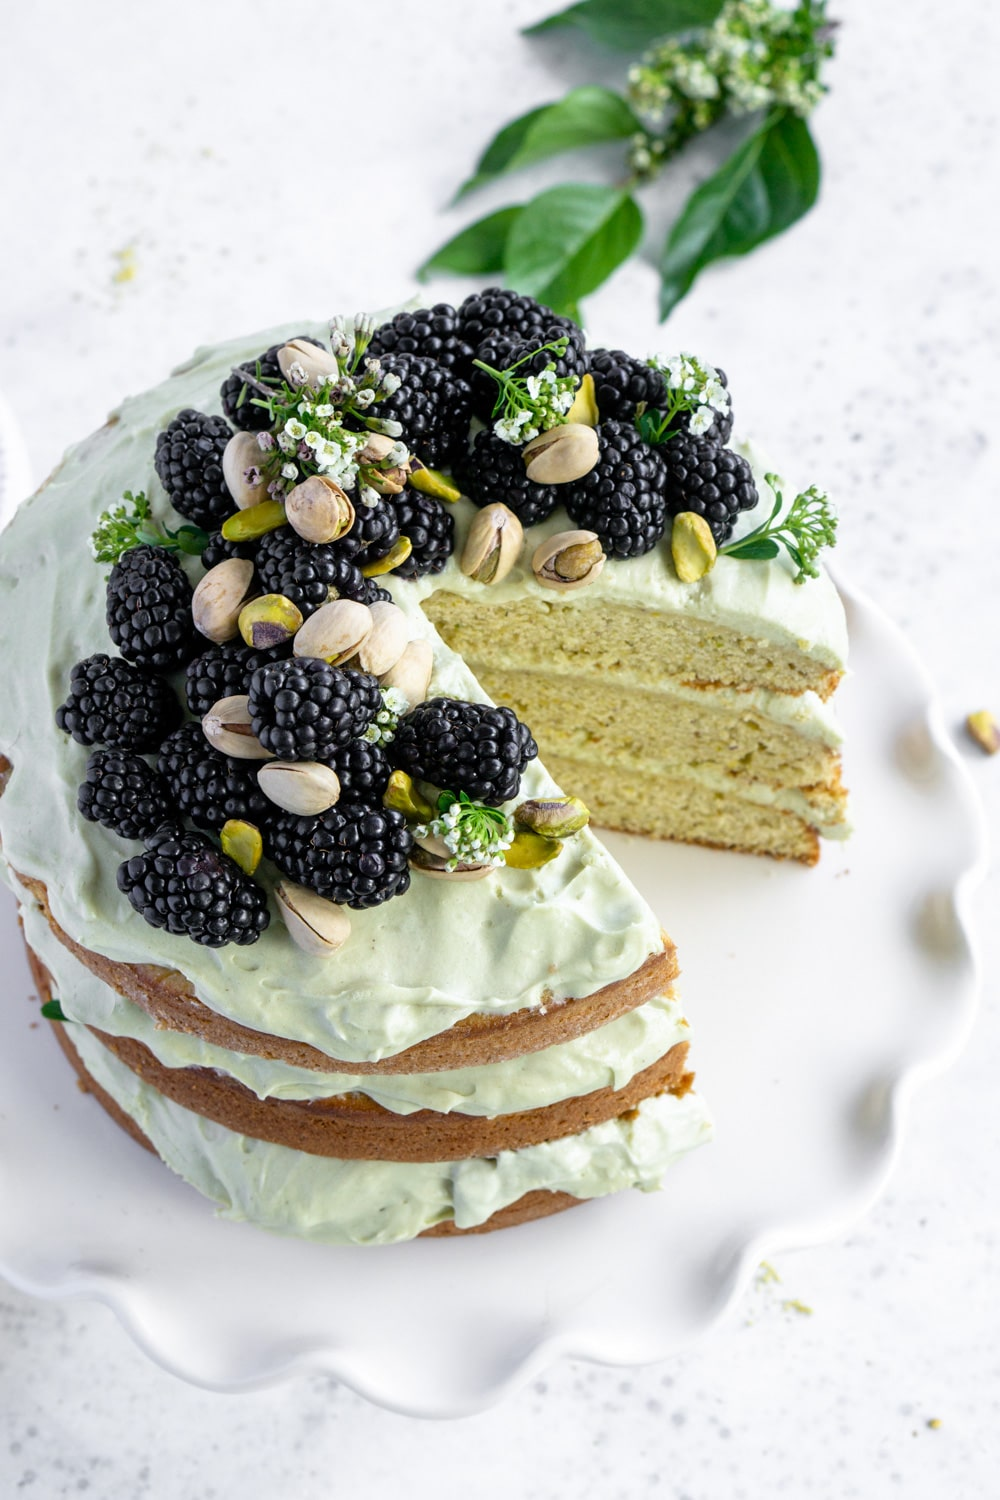 pistachio cake on a plate topped with blackberries and pistachios